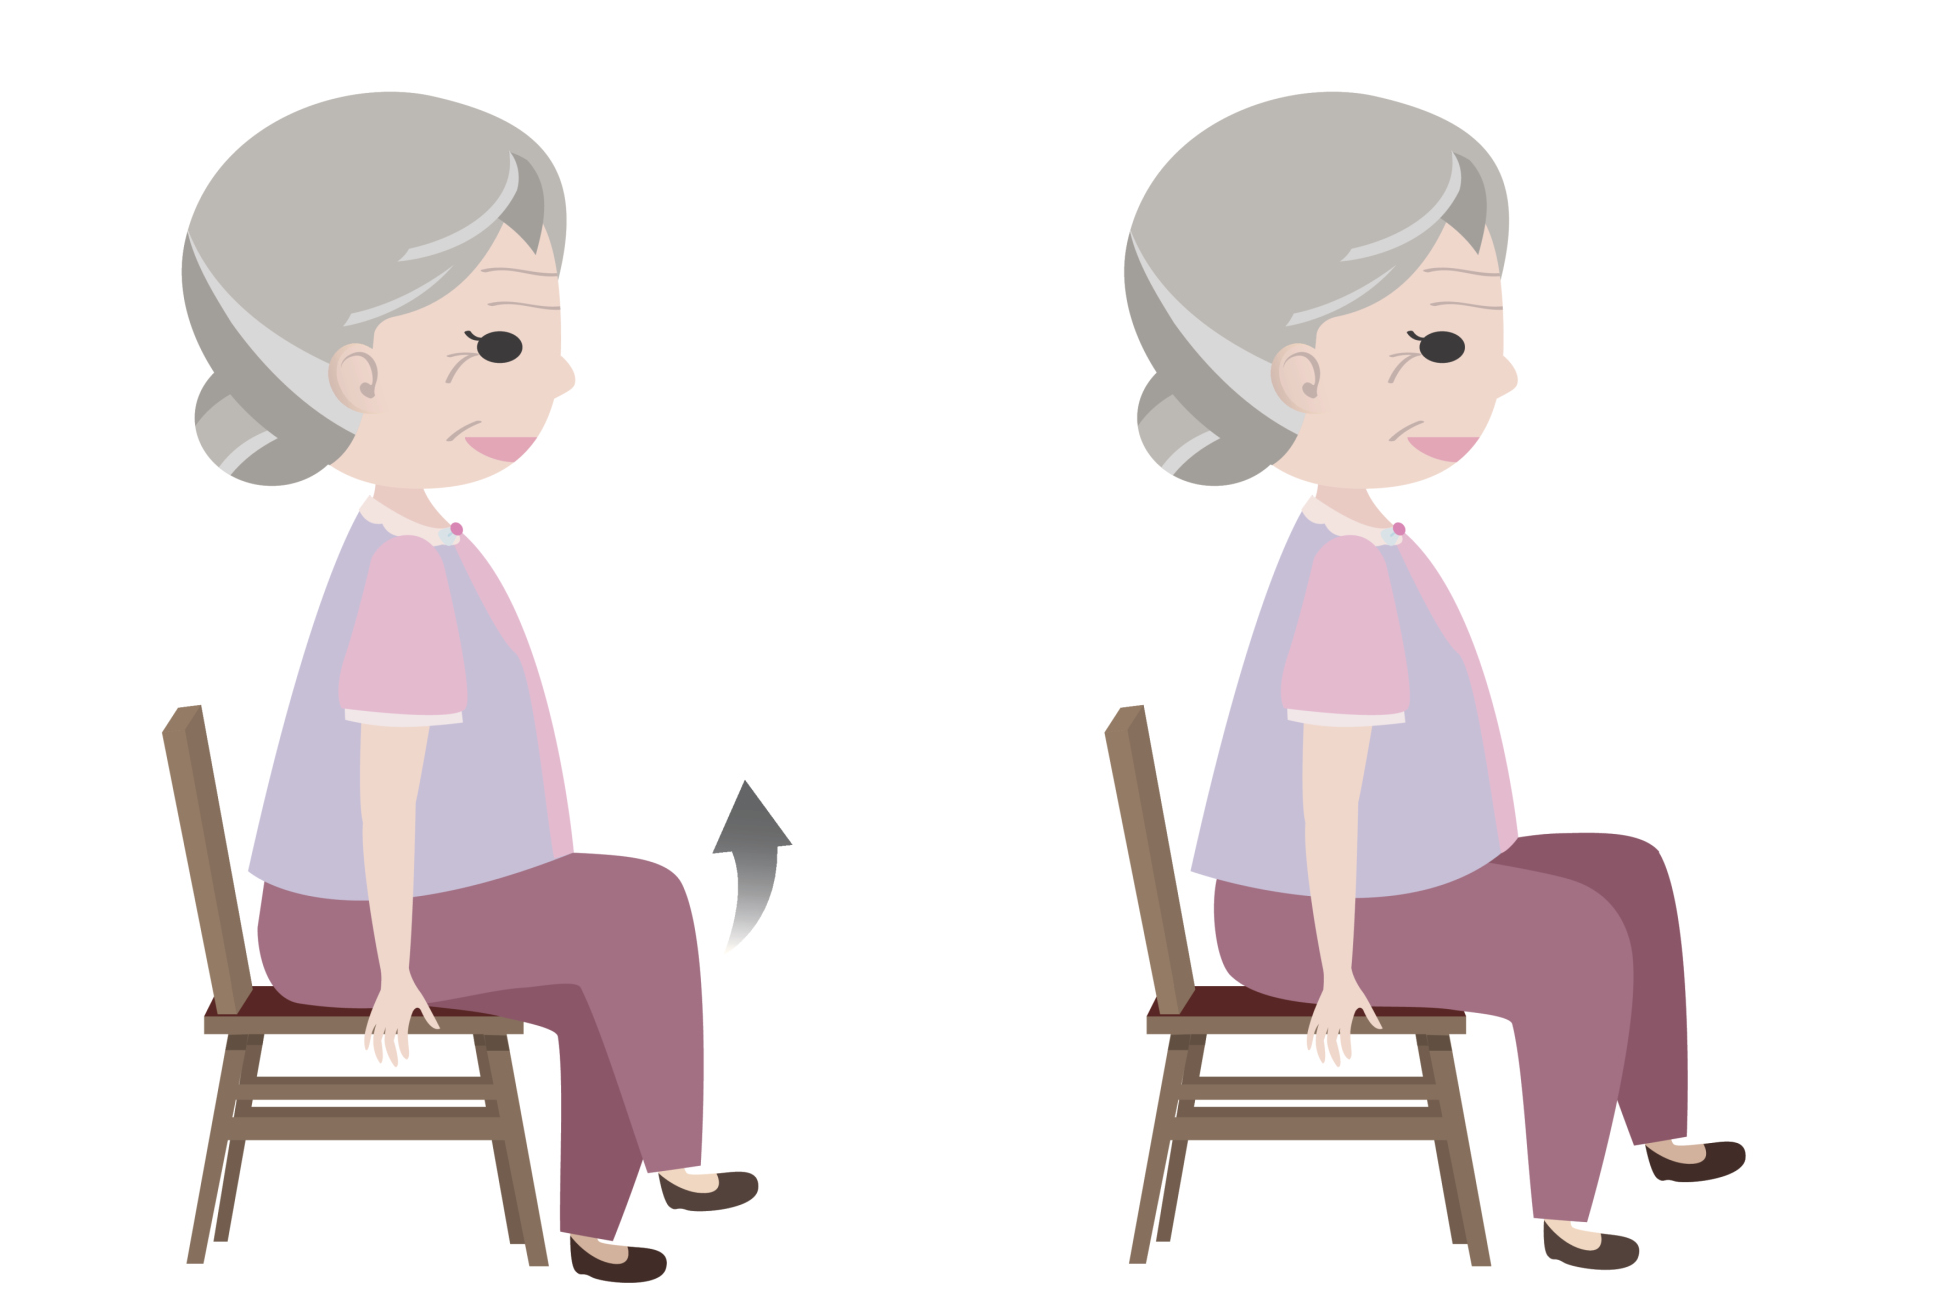 Chair exercises for seniors - 2 Seated March